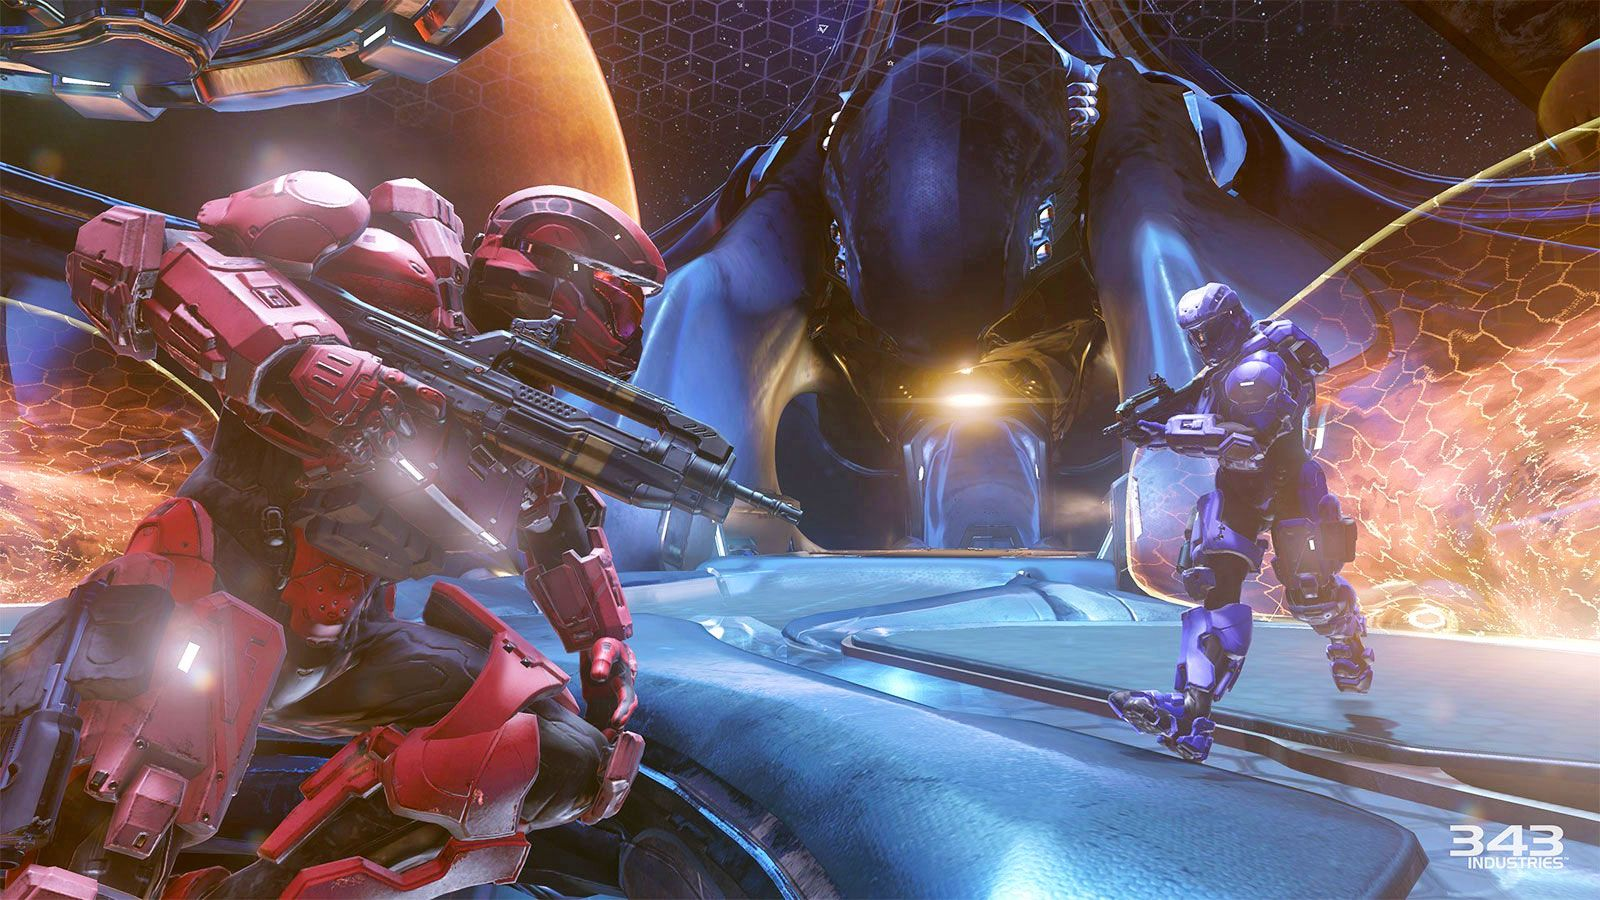 Halo 5 Forge Reaches Pcs On September 8th Xbox One Players Will